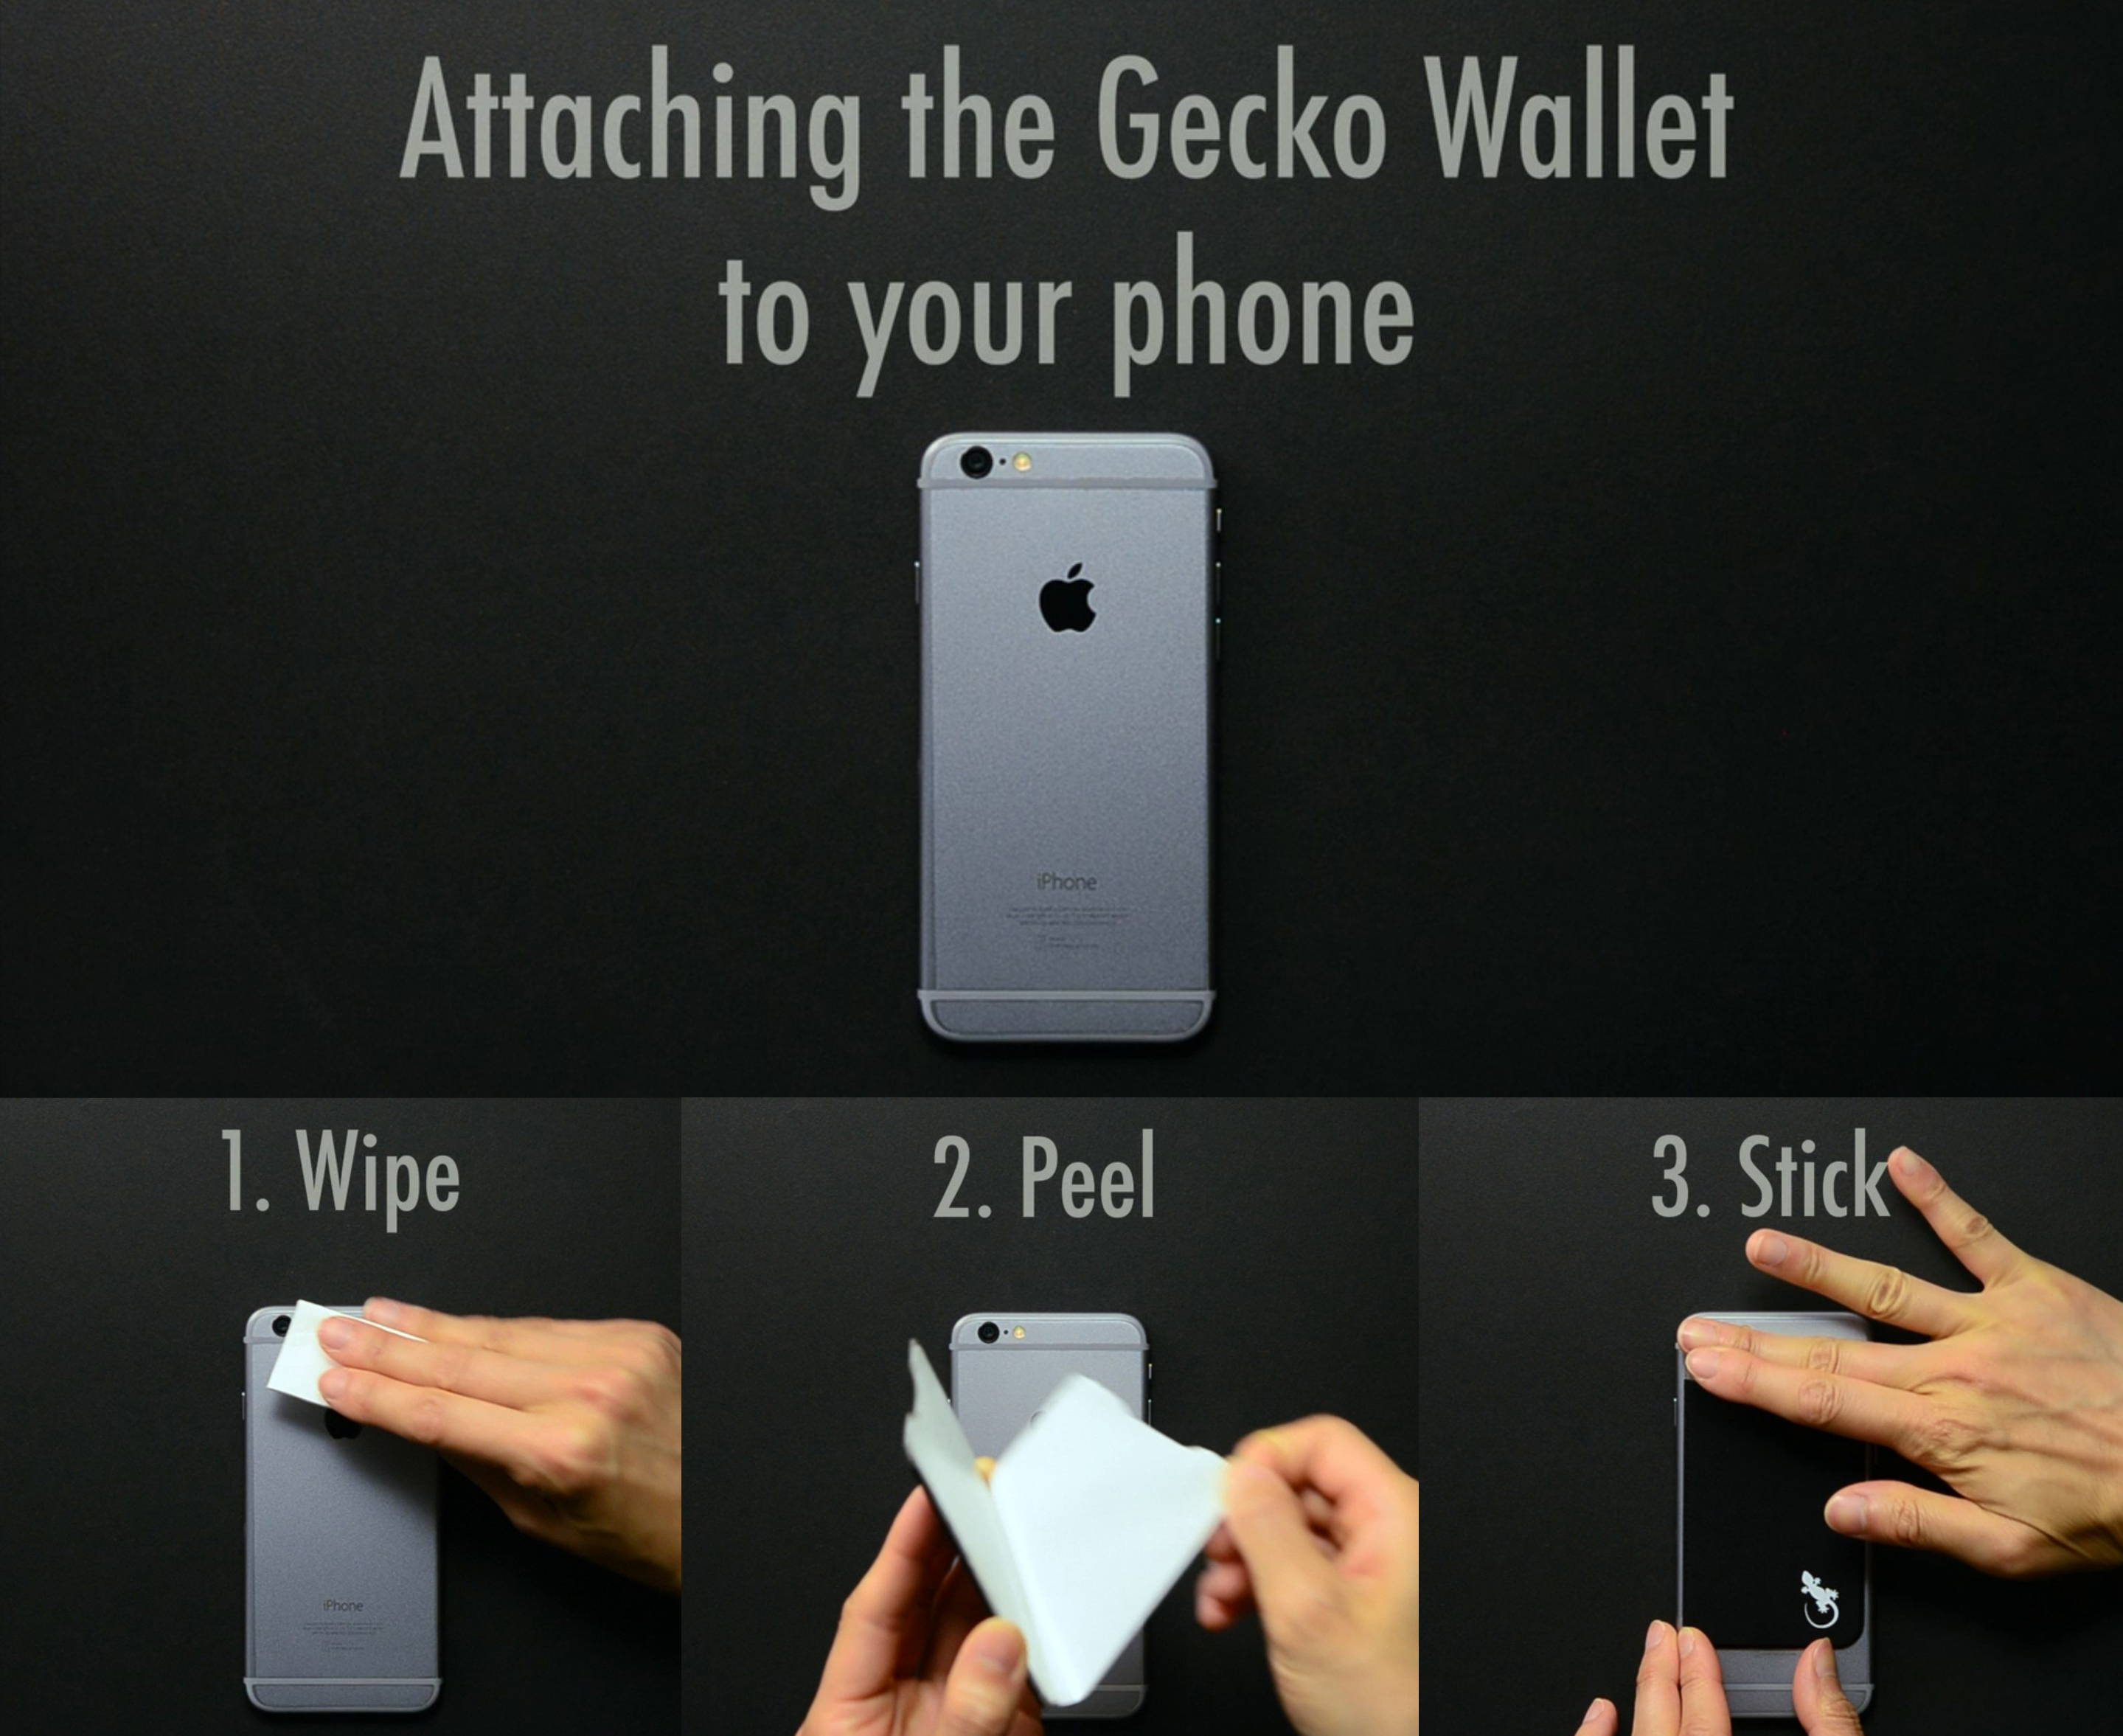 easy to attach your phone wallet, wipe your cellphone, peel our adhesive backing, stick the phone card holder to your phone.